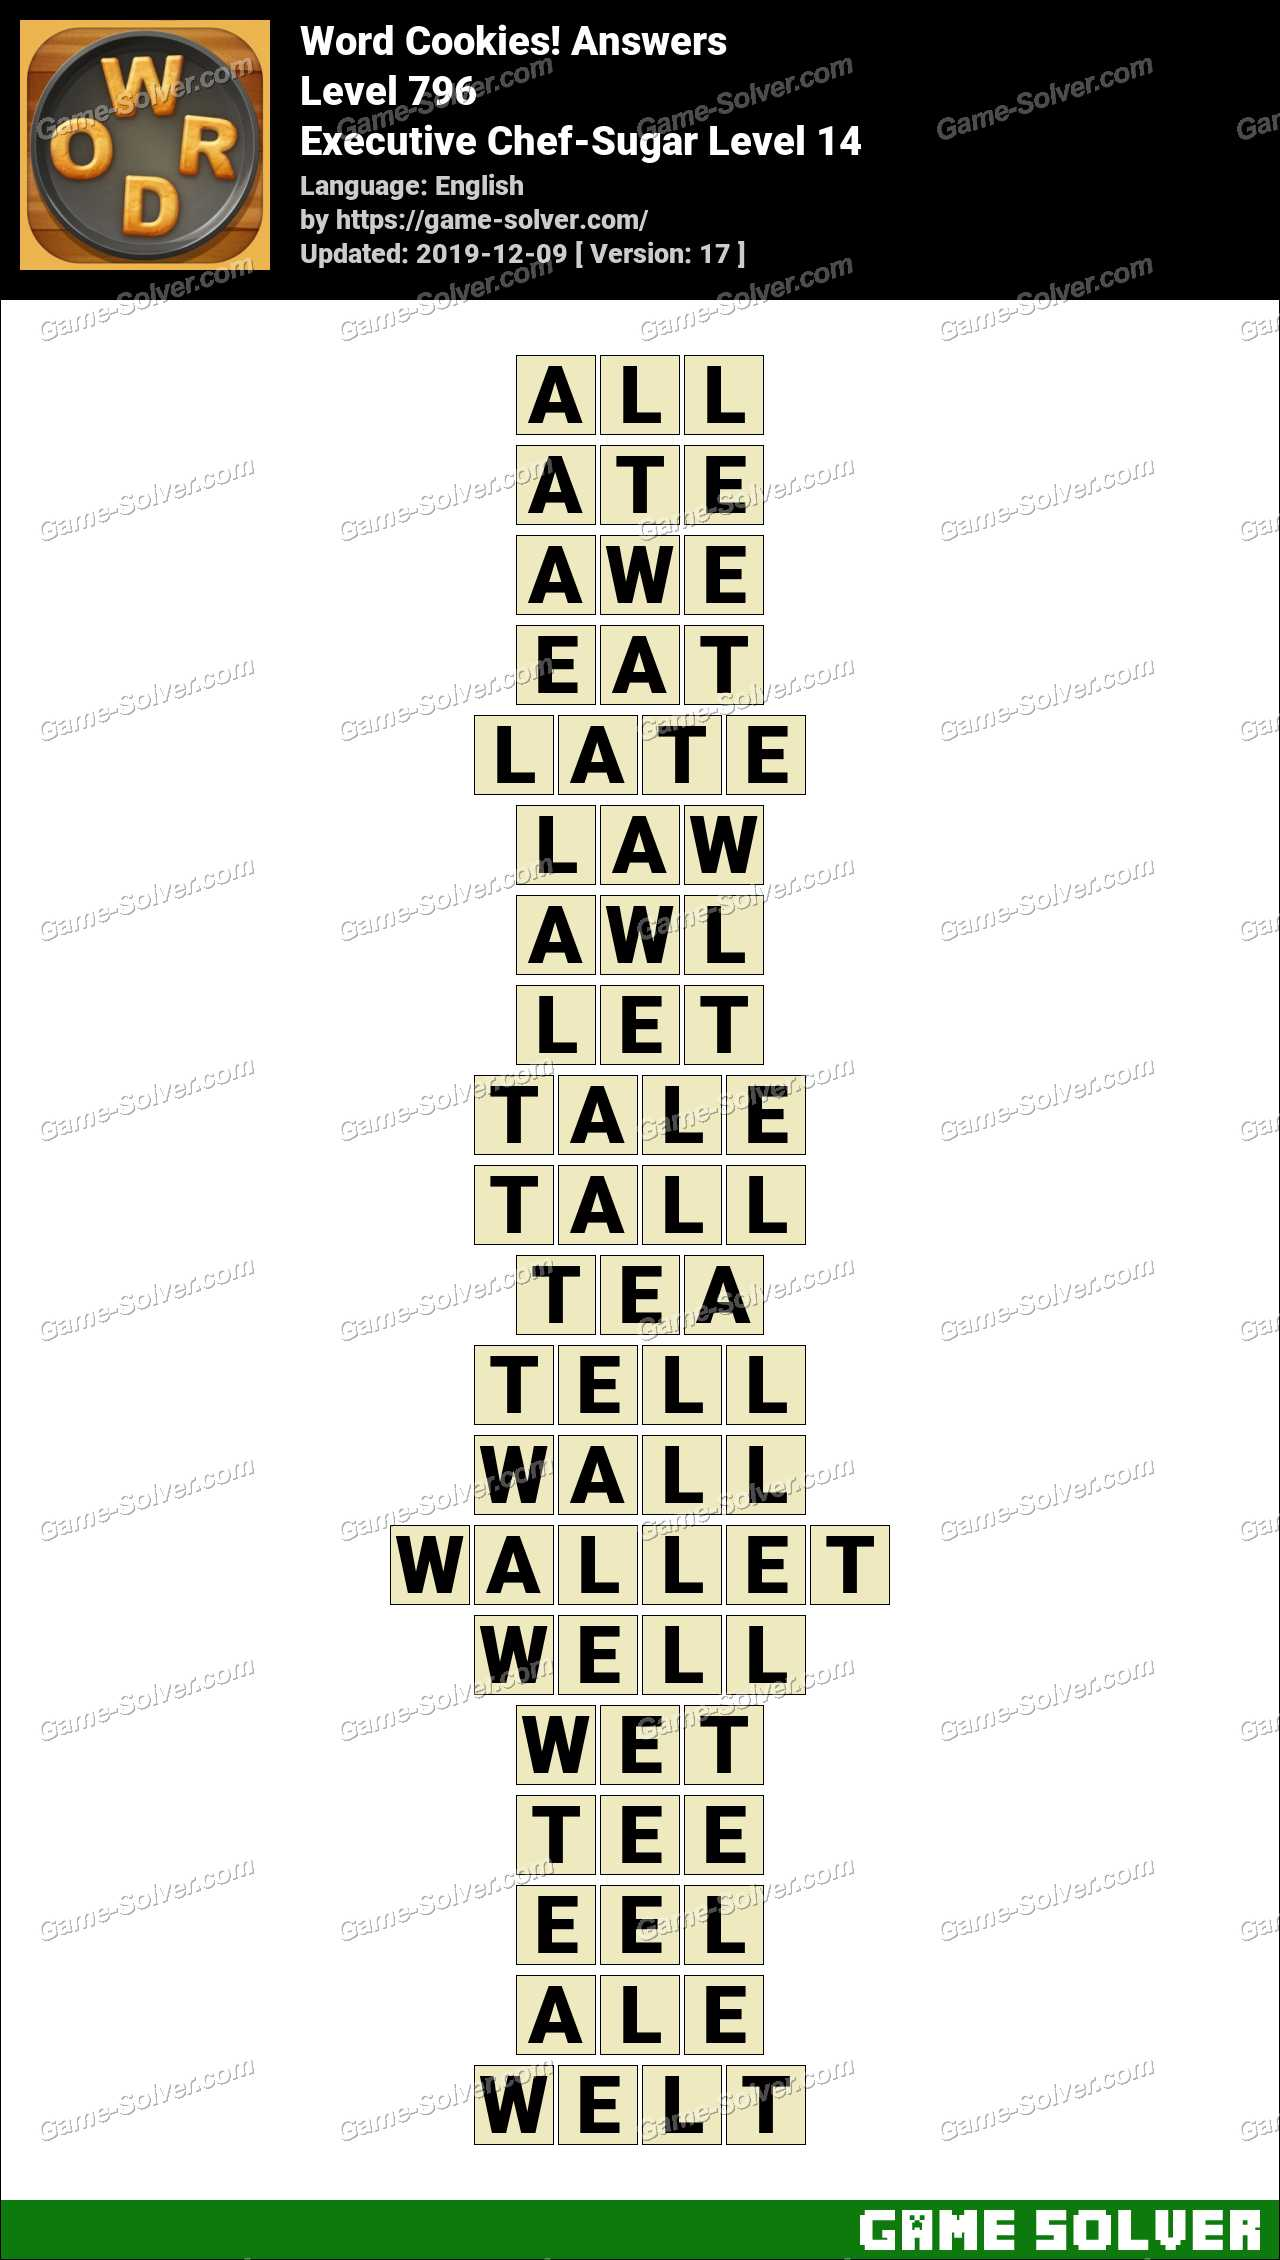 Word Cookies Executive Chef-Sugar Level 14 Answers